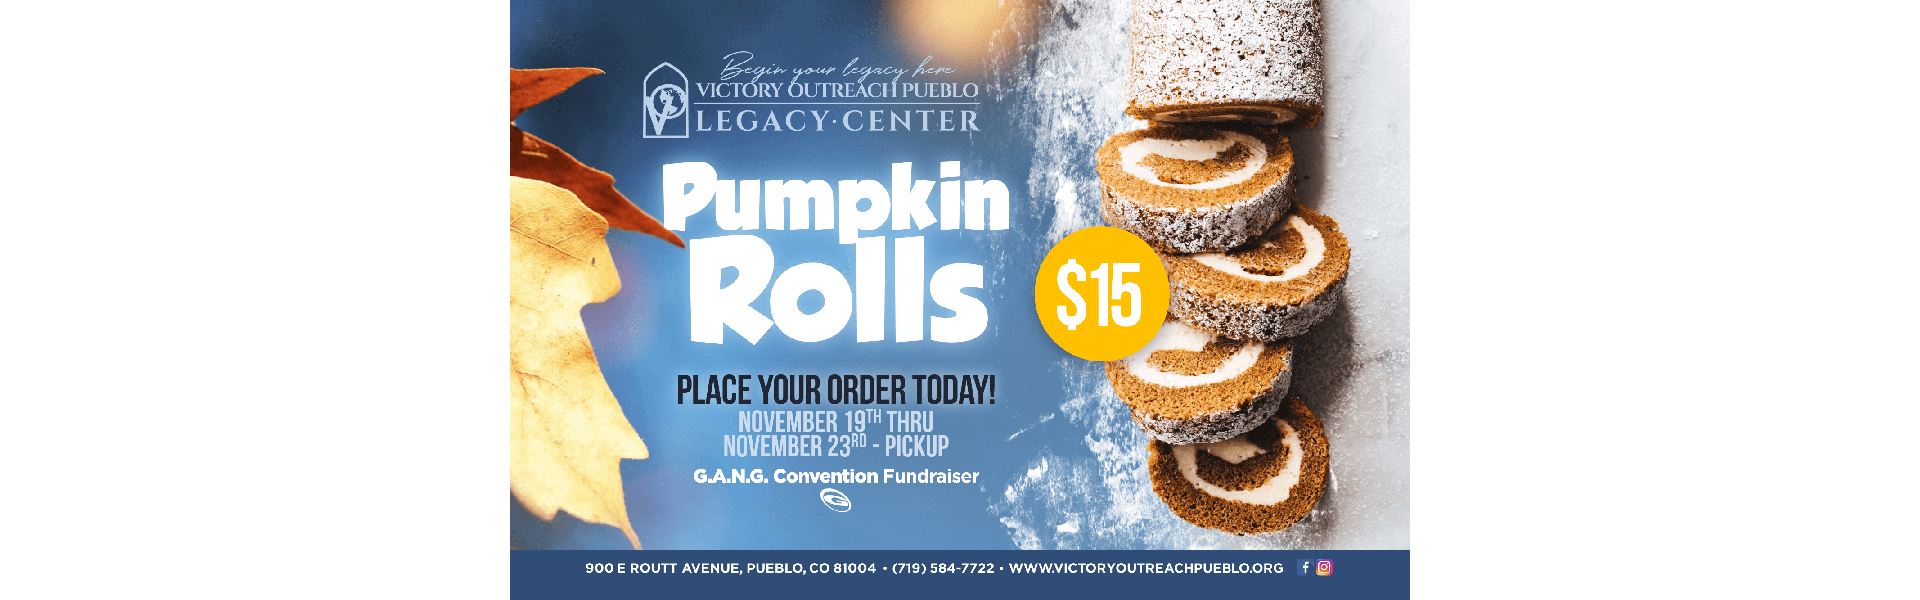 Pumpkin Rolls For Sale 11/19-23